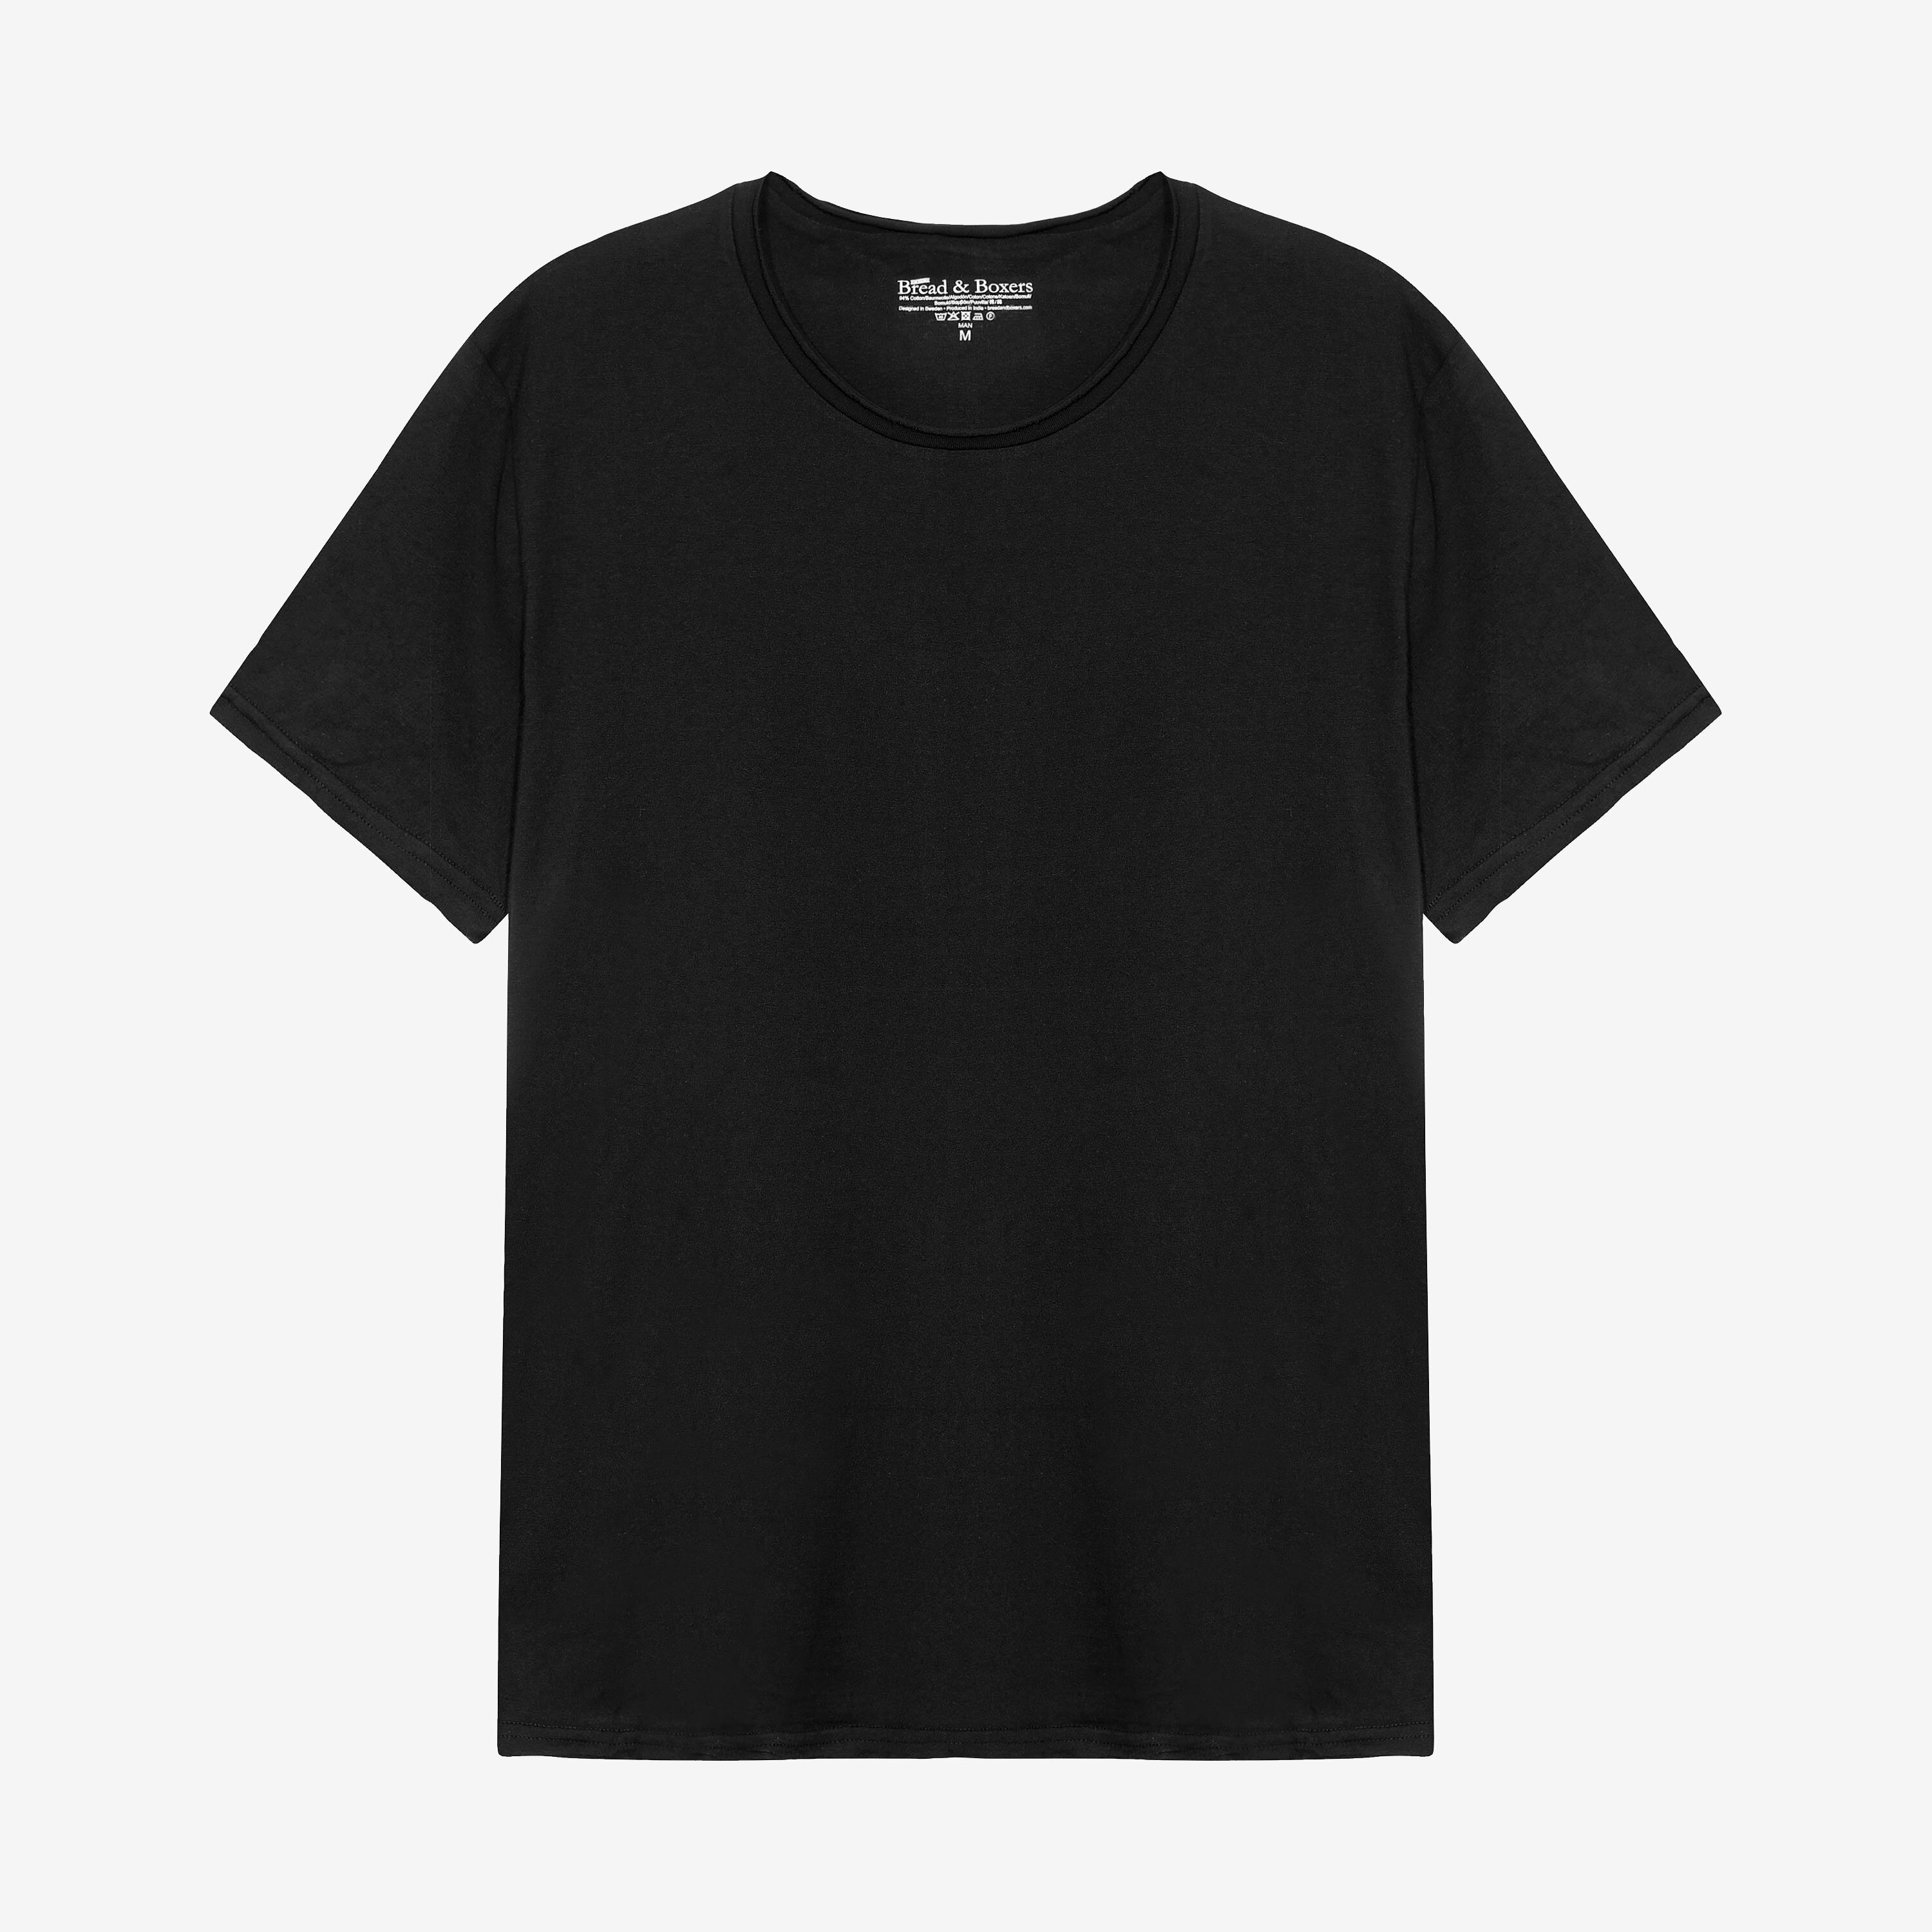 103202_Man_Crew-Neck_relaxed_black_CO